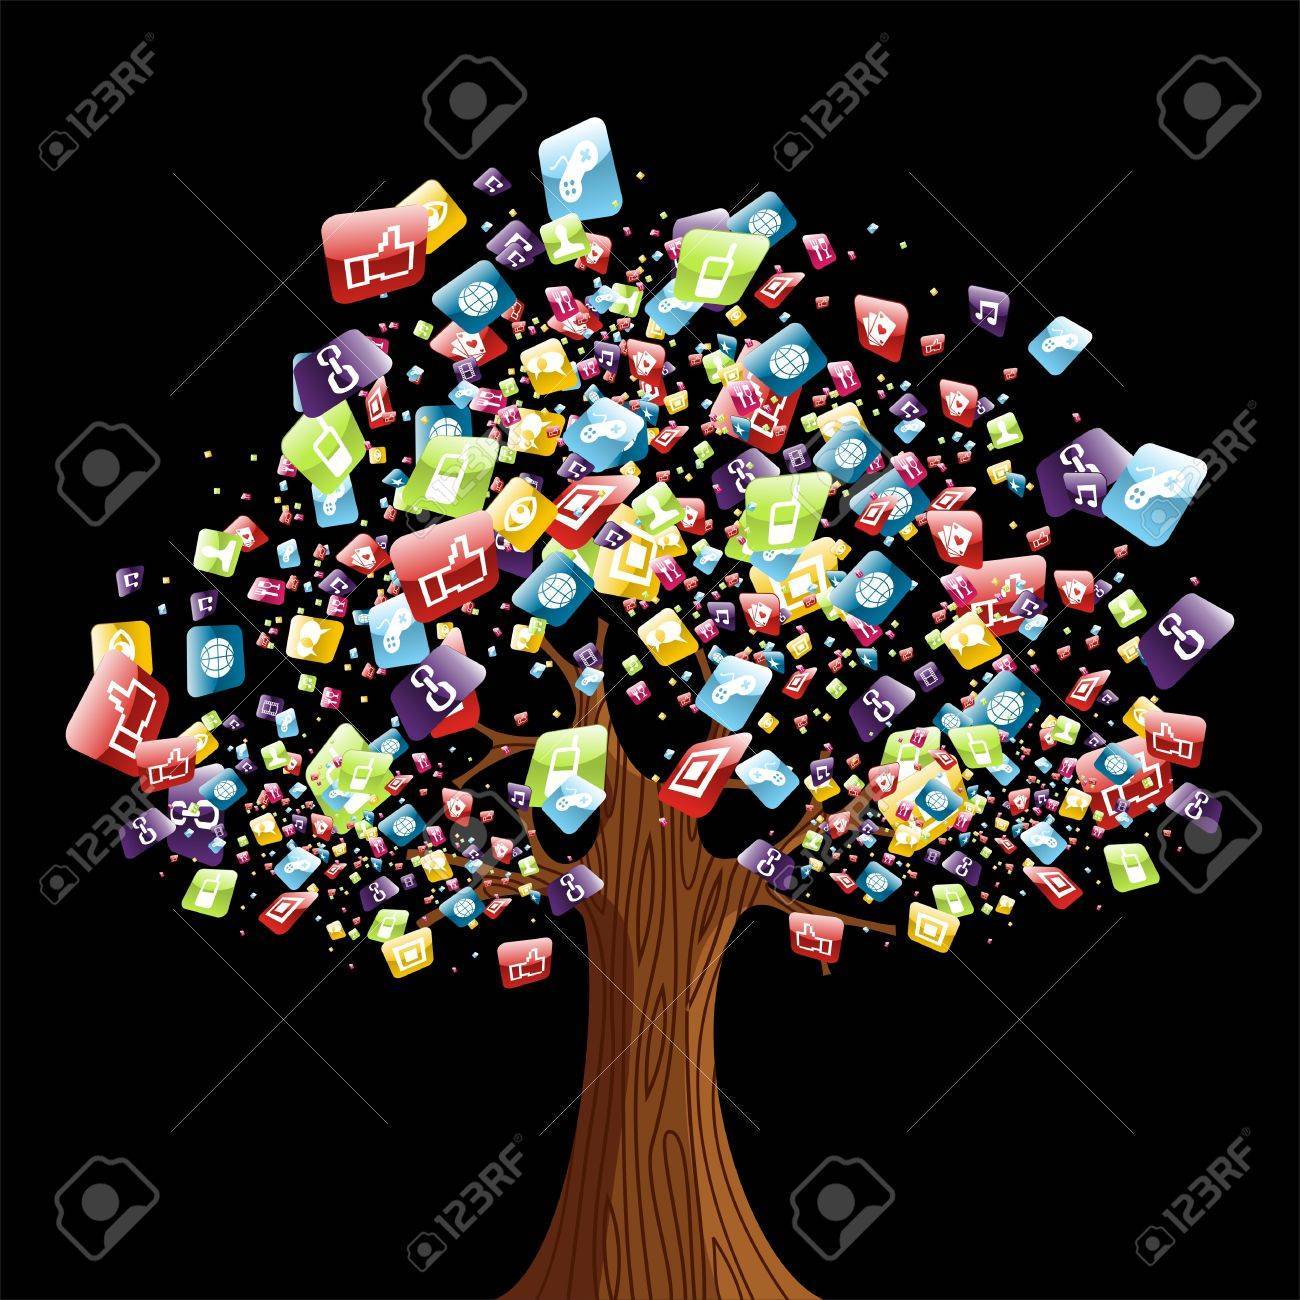 Smart phone application icons tree. Vector illustration layered for easy manipulation and customisation. Stock Vector - 14777597